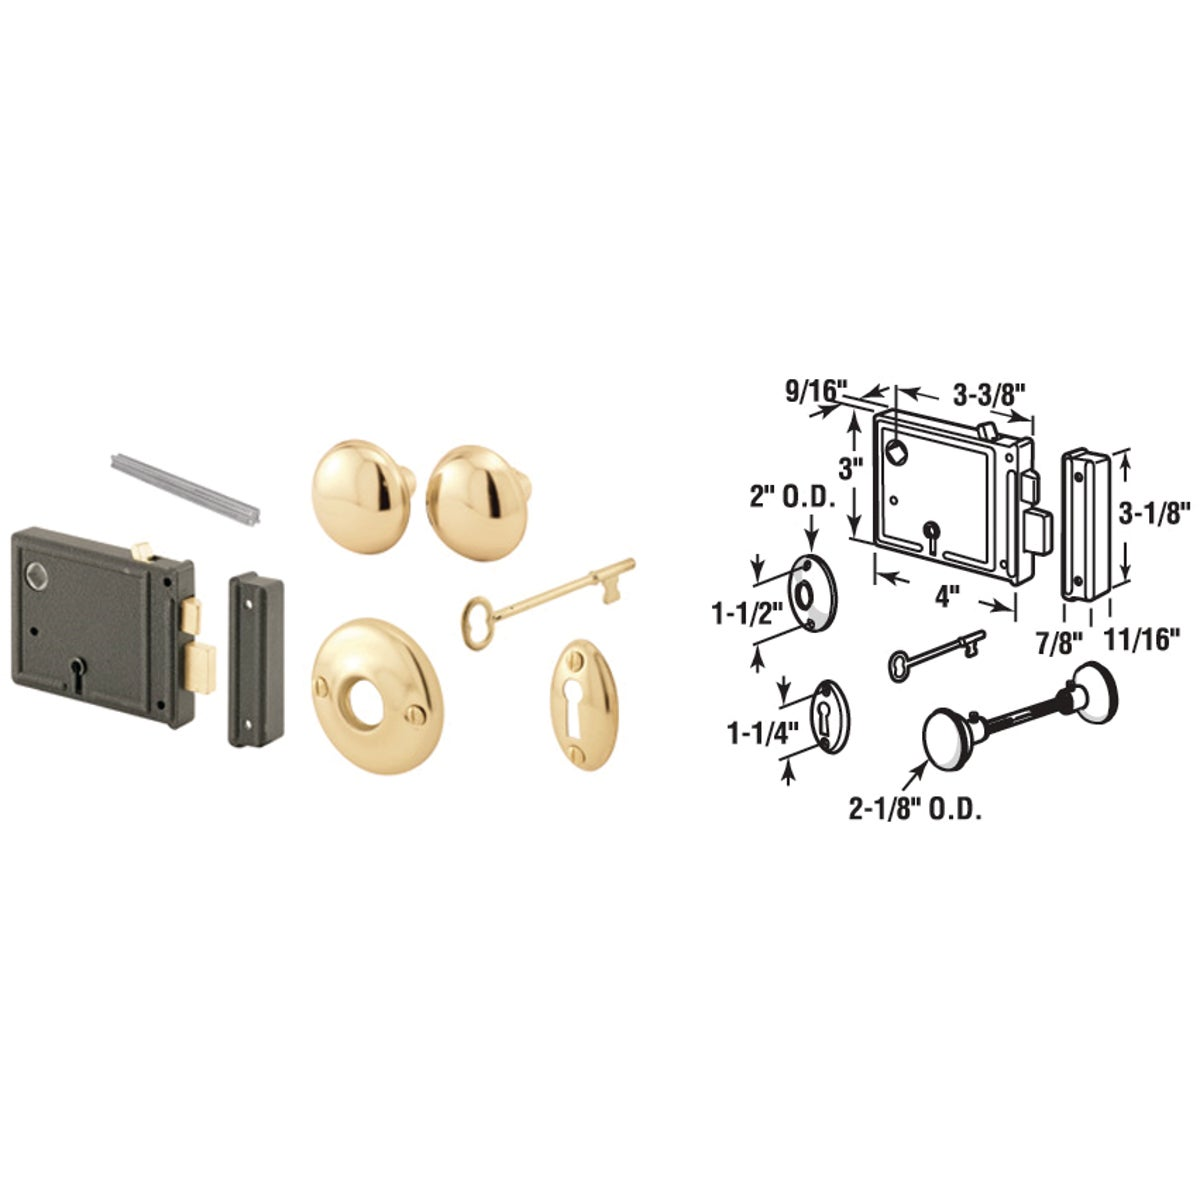 HORZ BIT KEY TRIM LOCK - E 2478 by Prime Line Products